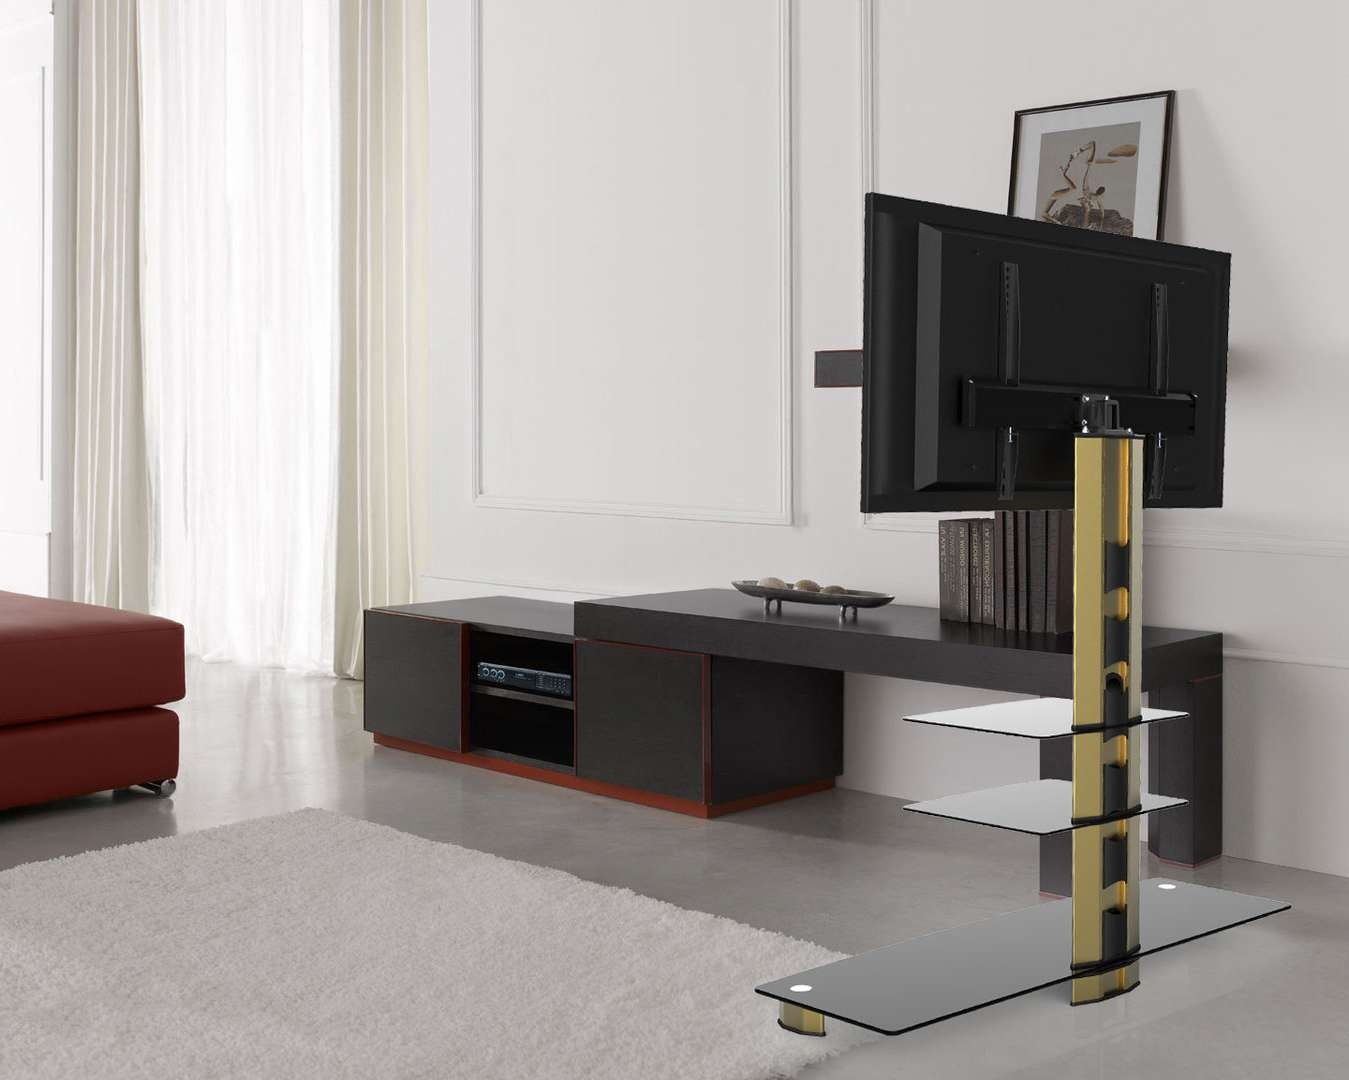 Gold Black Glass Tv Stand Bracket Cantilever 3 Black Shelves Within Gold Tv Stands (Gallery 20 of 20)